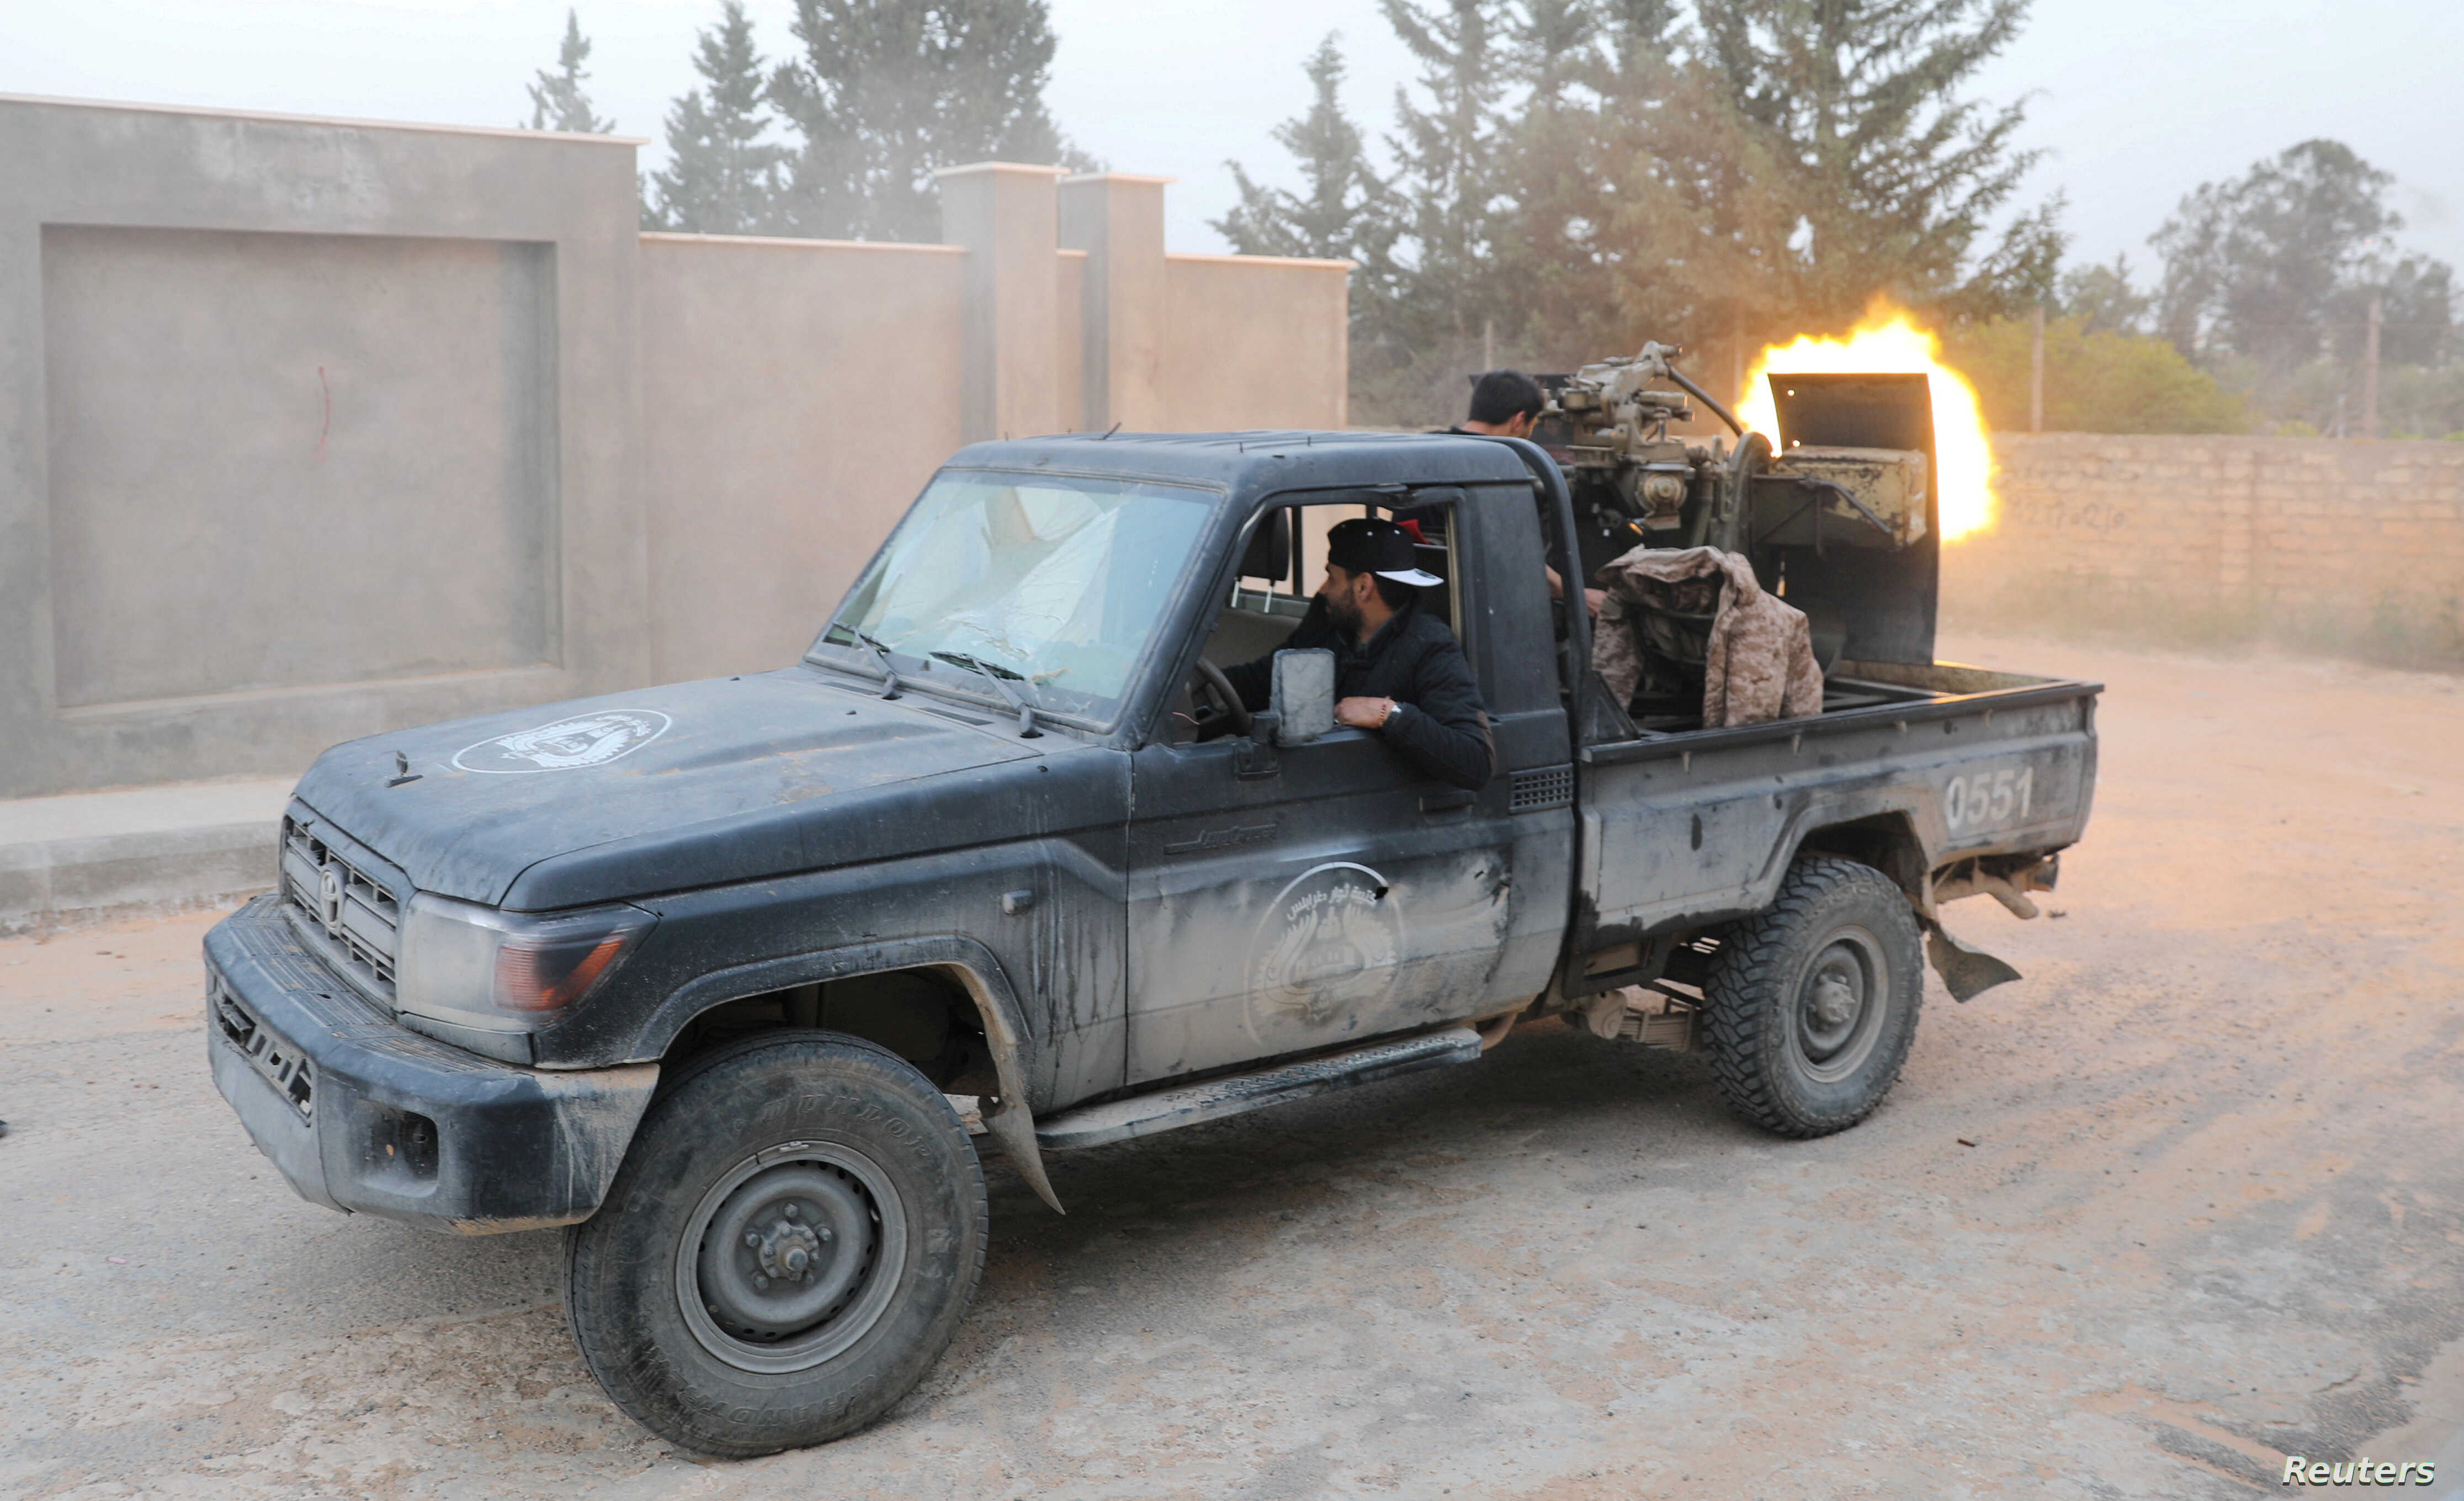 FILE - Members of the Libyan internationally recognized government forces fire during fighting with Eastern forces in Ain Zara in Tripoli, Libya, April 20, 2019.